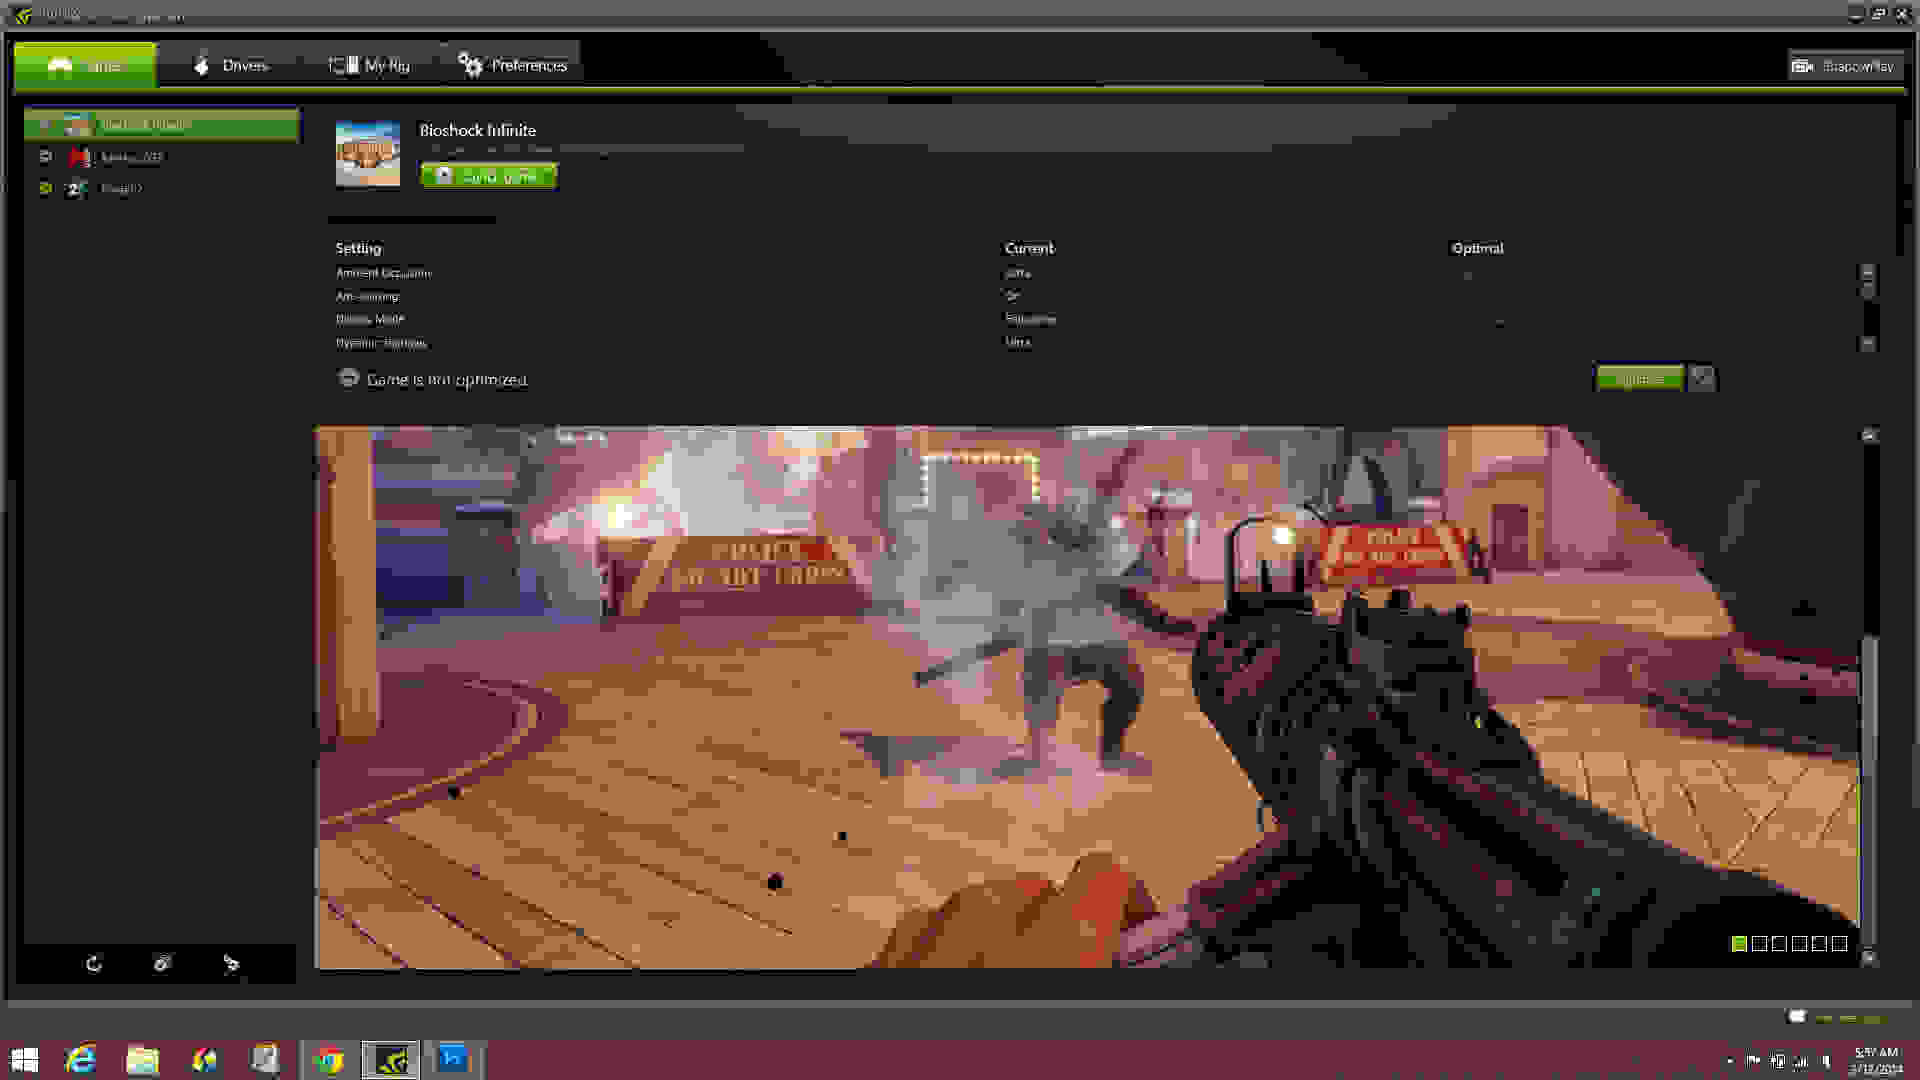 The game optimization feature on Nvidia GeForce Experience